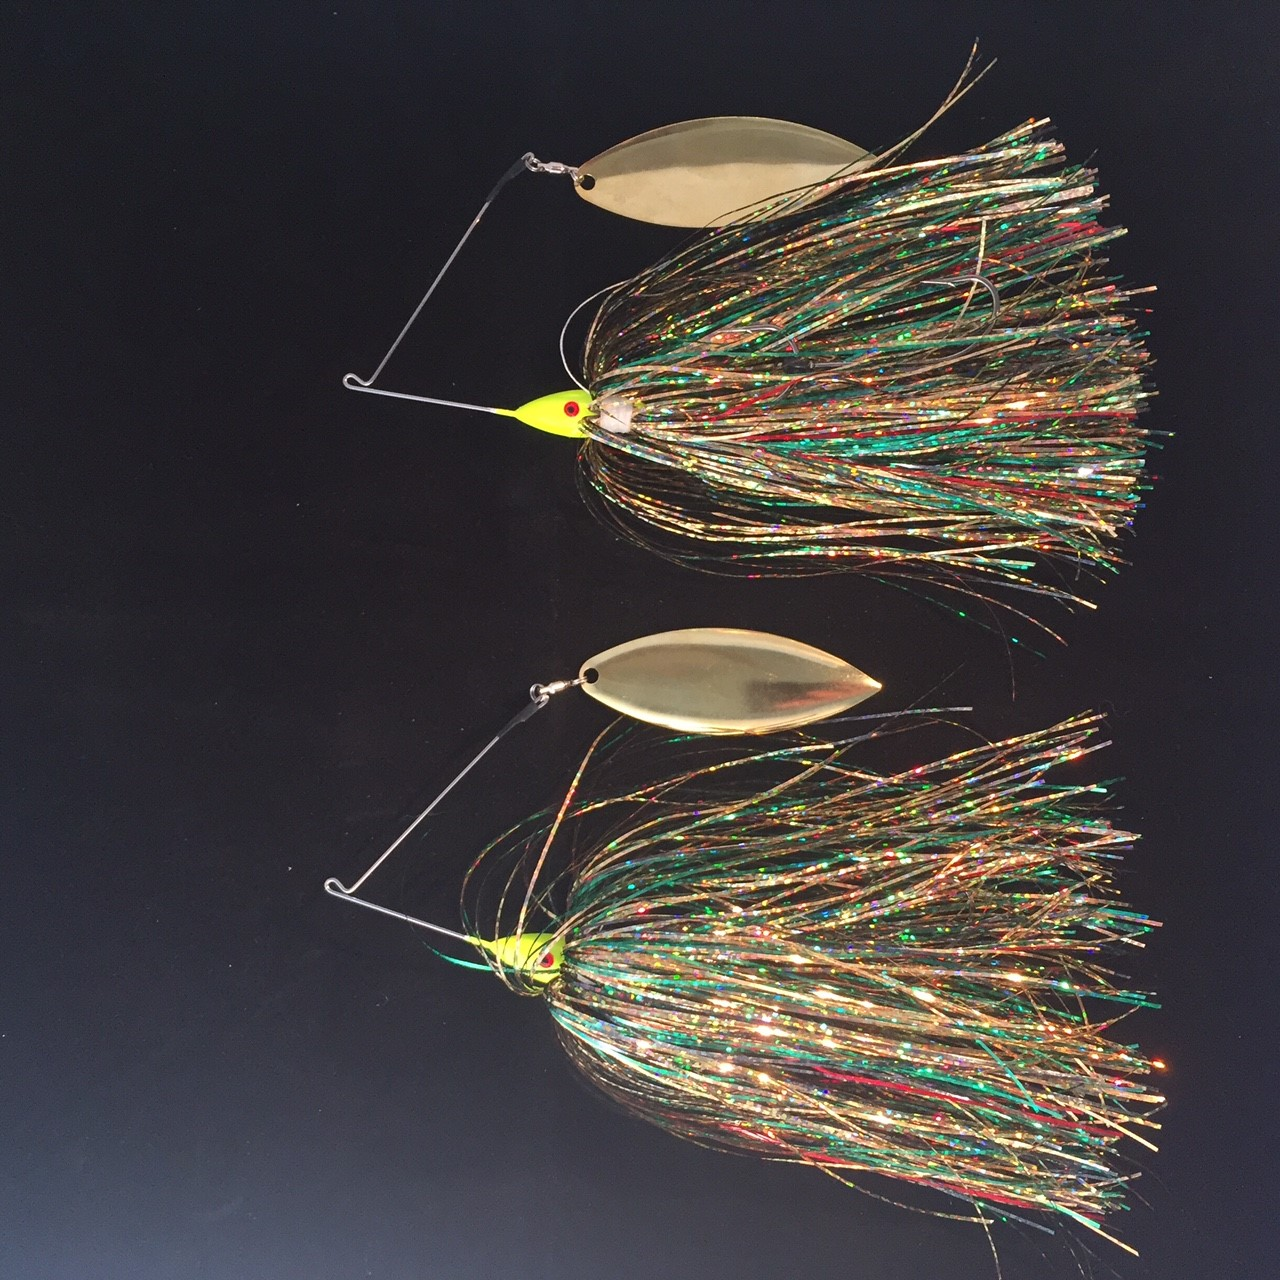 hl spinnerbait hot perch flashabou skirt kies gewicht hollandlures predator kayakfishing. Black Bedroom Furniture Sets. Home Design Ideas